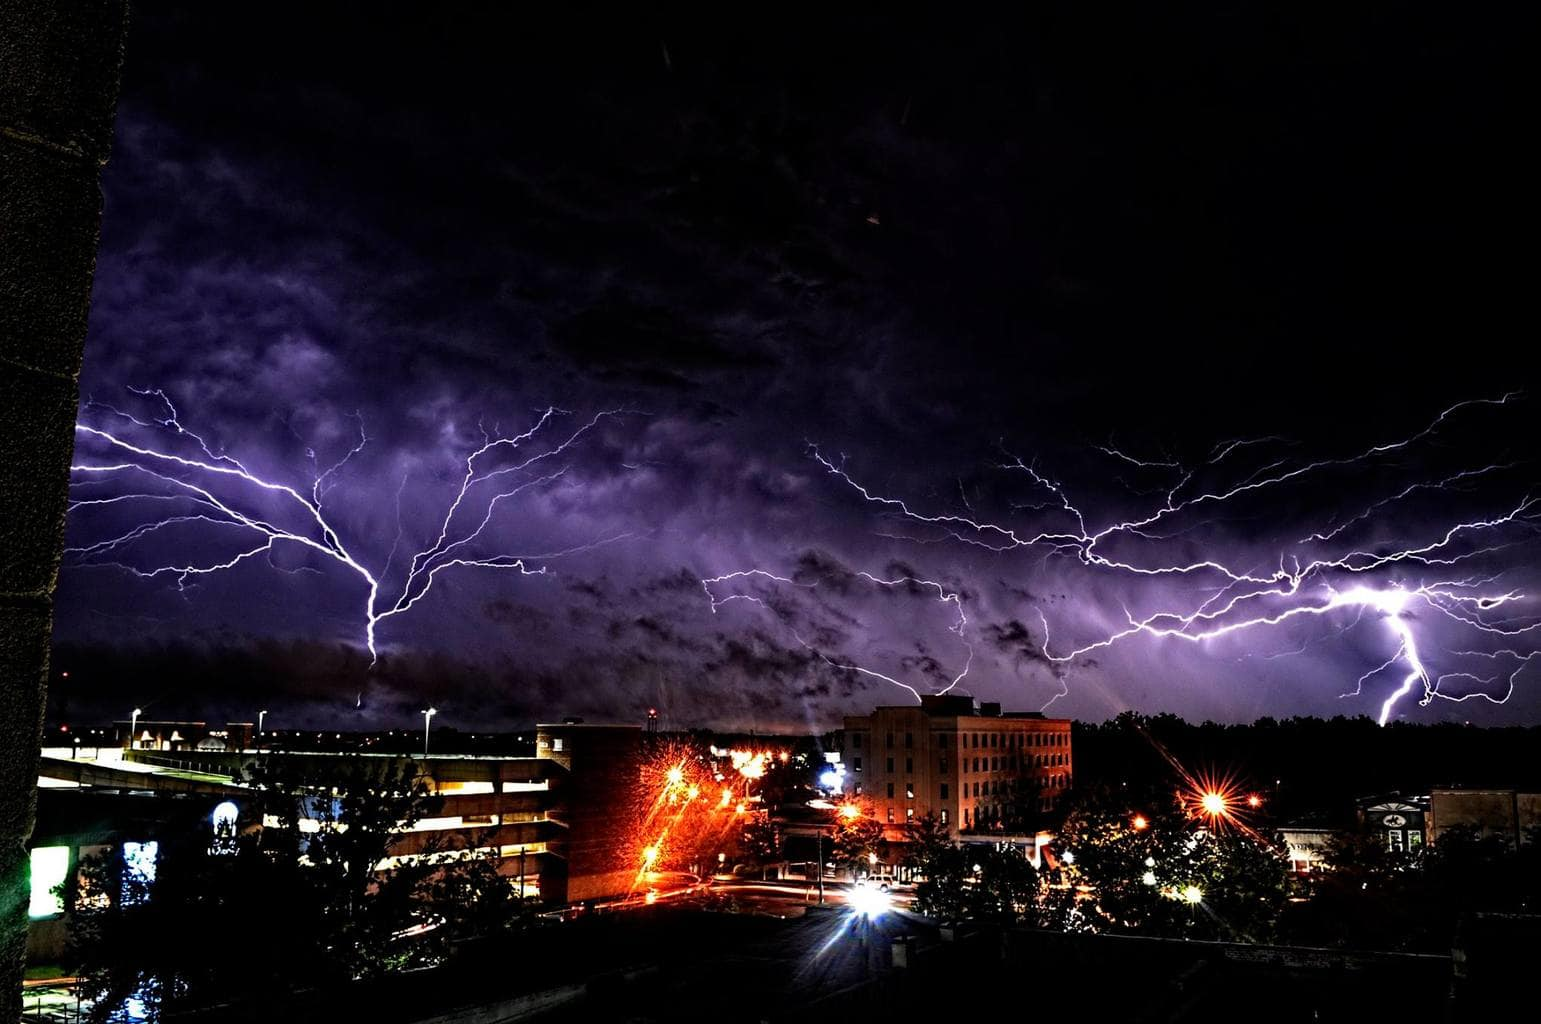 I took this shot from the fire escape of the building I live in here in Downtown Gainesville. Hope you like the shot. It's also entered in the Weather Channel's current photo contest. Was taken with a 15 second exposure, as soon as I pressed the remote shutter release this happened. I literally jumped into the air with excitement. Photography is my true passion, hope you enjoy my work. Thanks for having me.